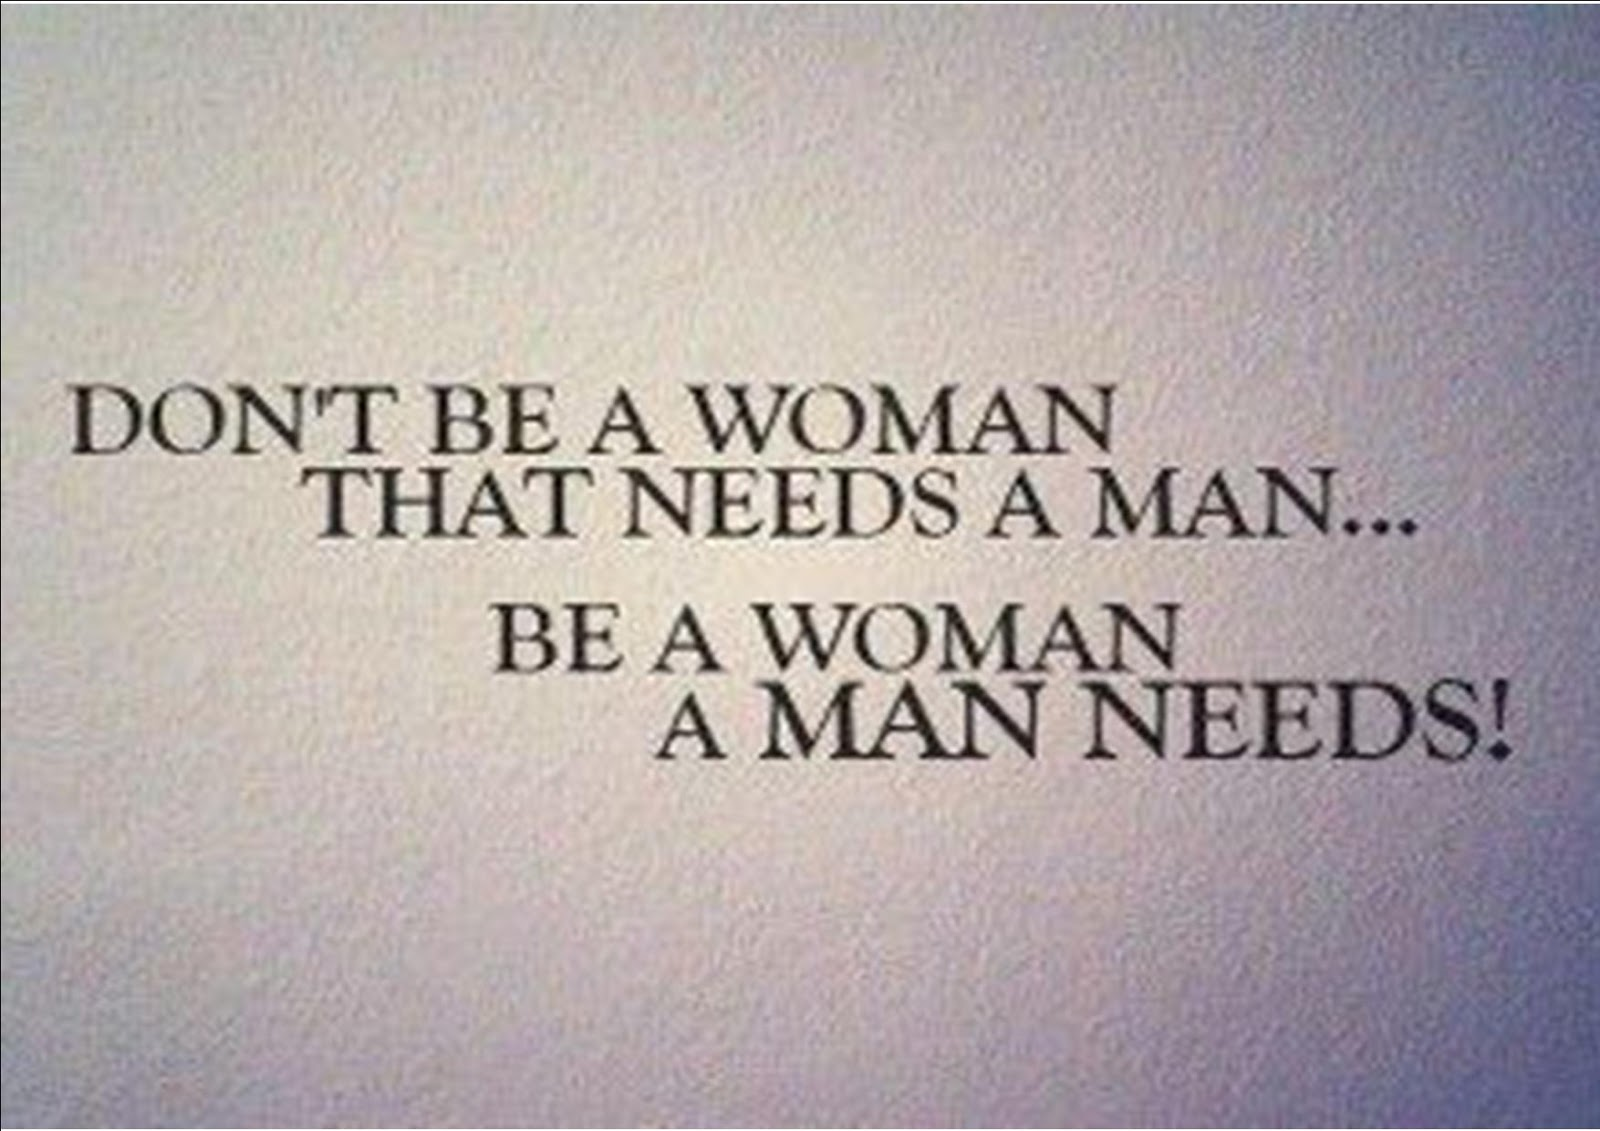 Positive Quotes For Women Quotes About Women With Pictures  Aol Image Search Results